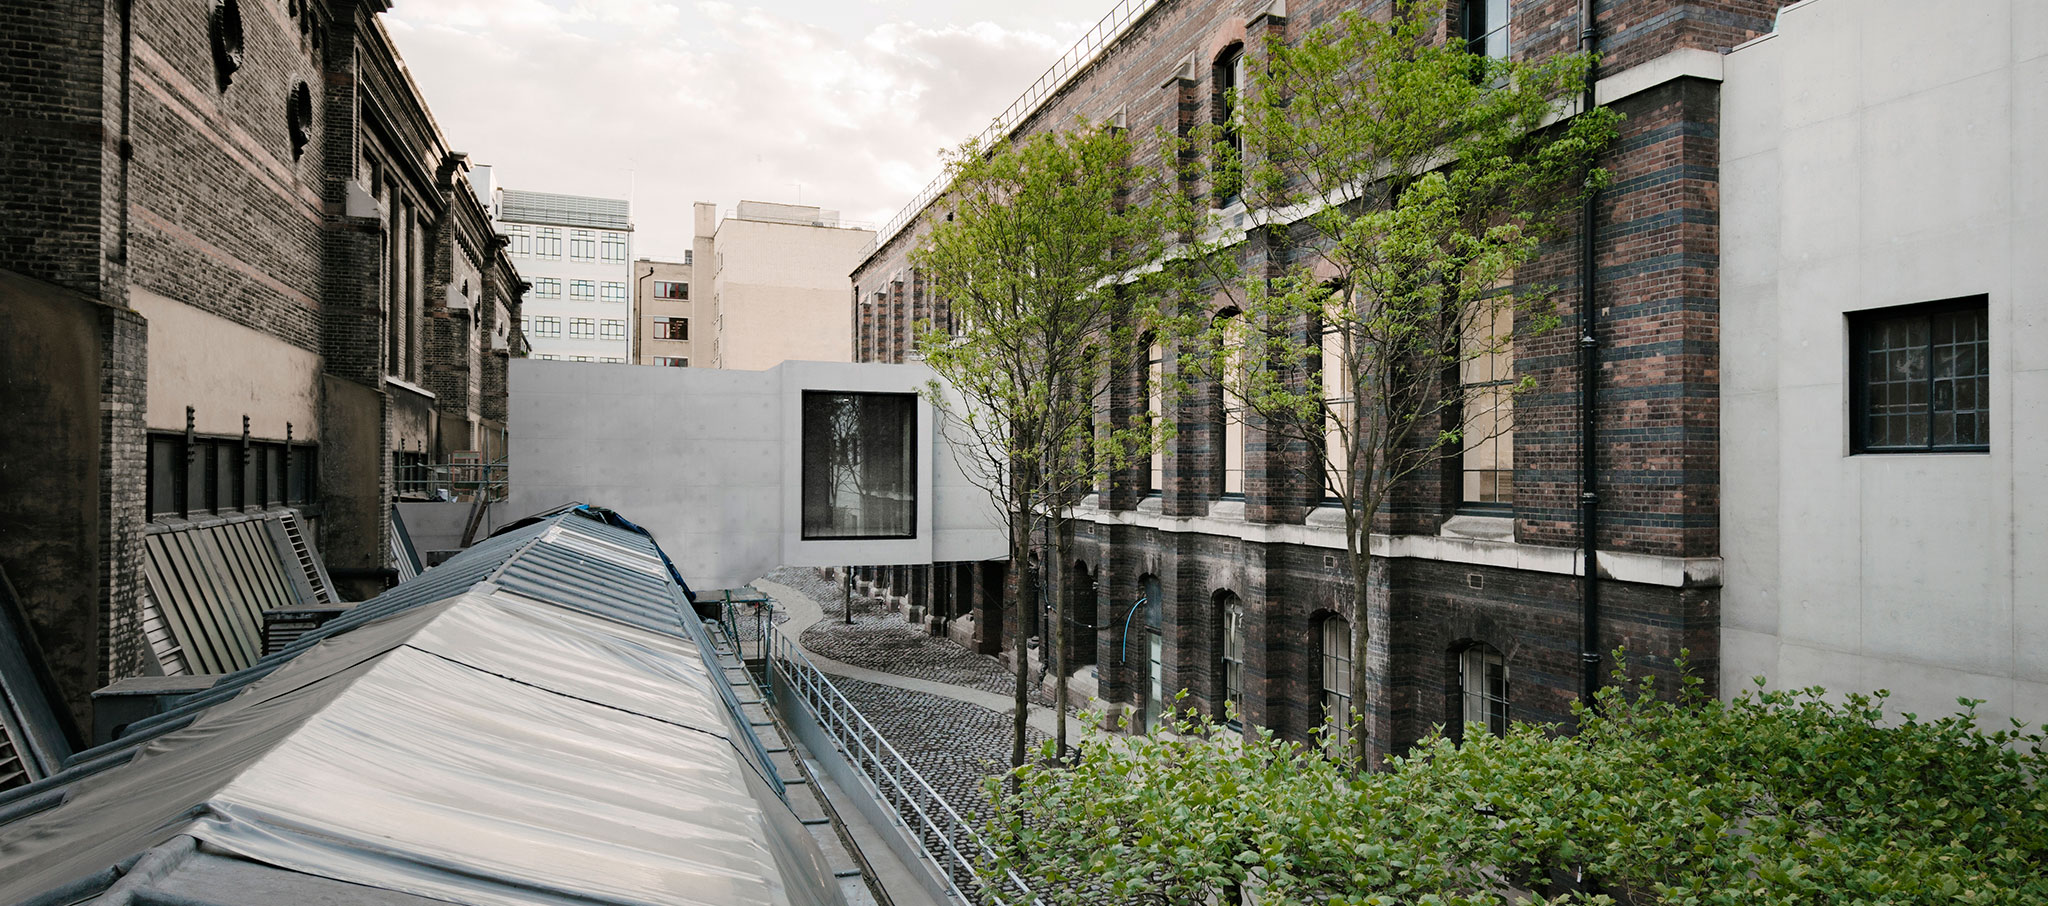 Royal Academy of Arts by David Chipperfield. Photograph by Simon Menges